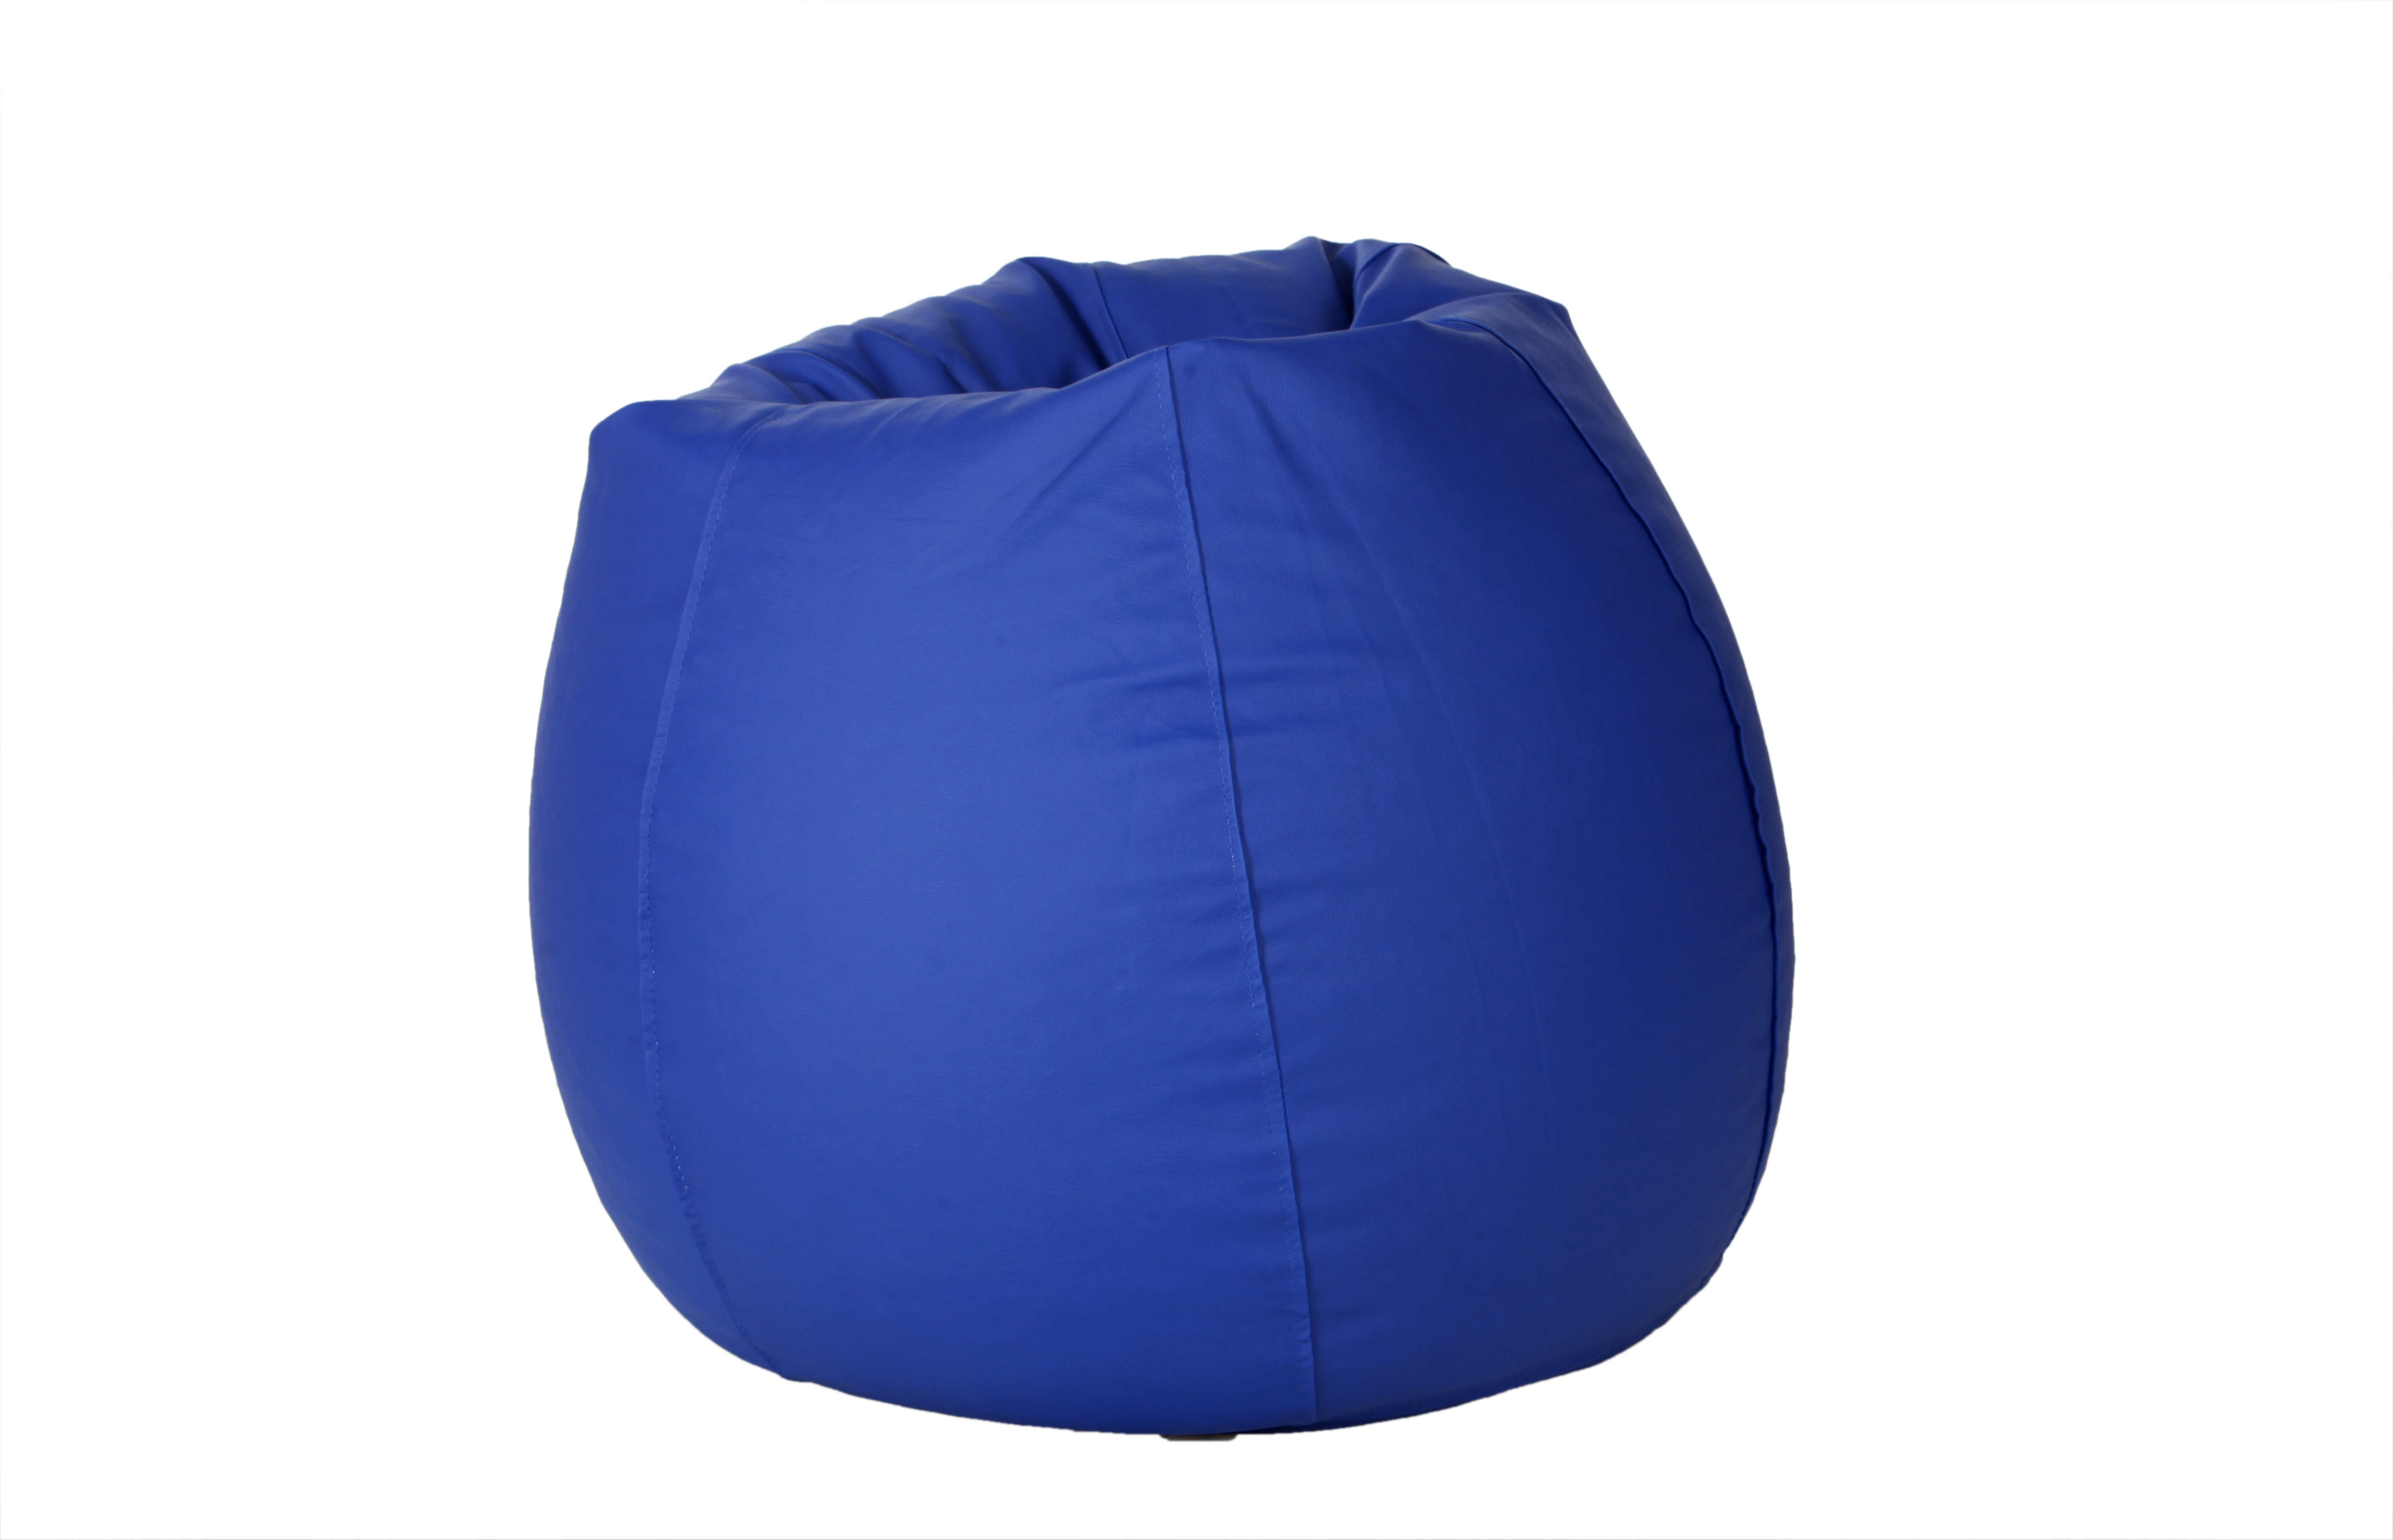 View Comfy Bean Bags XXXL Teardrop Bean Bag Cover(Blue) Furniture (Comfy Bean Bags)